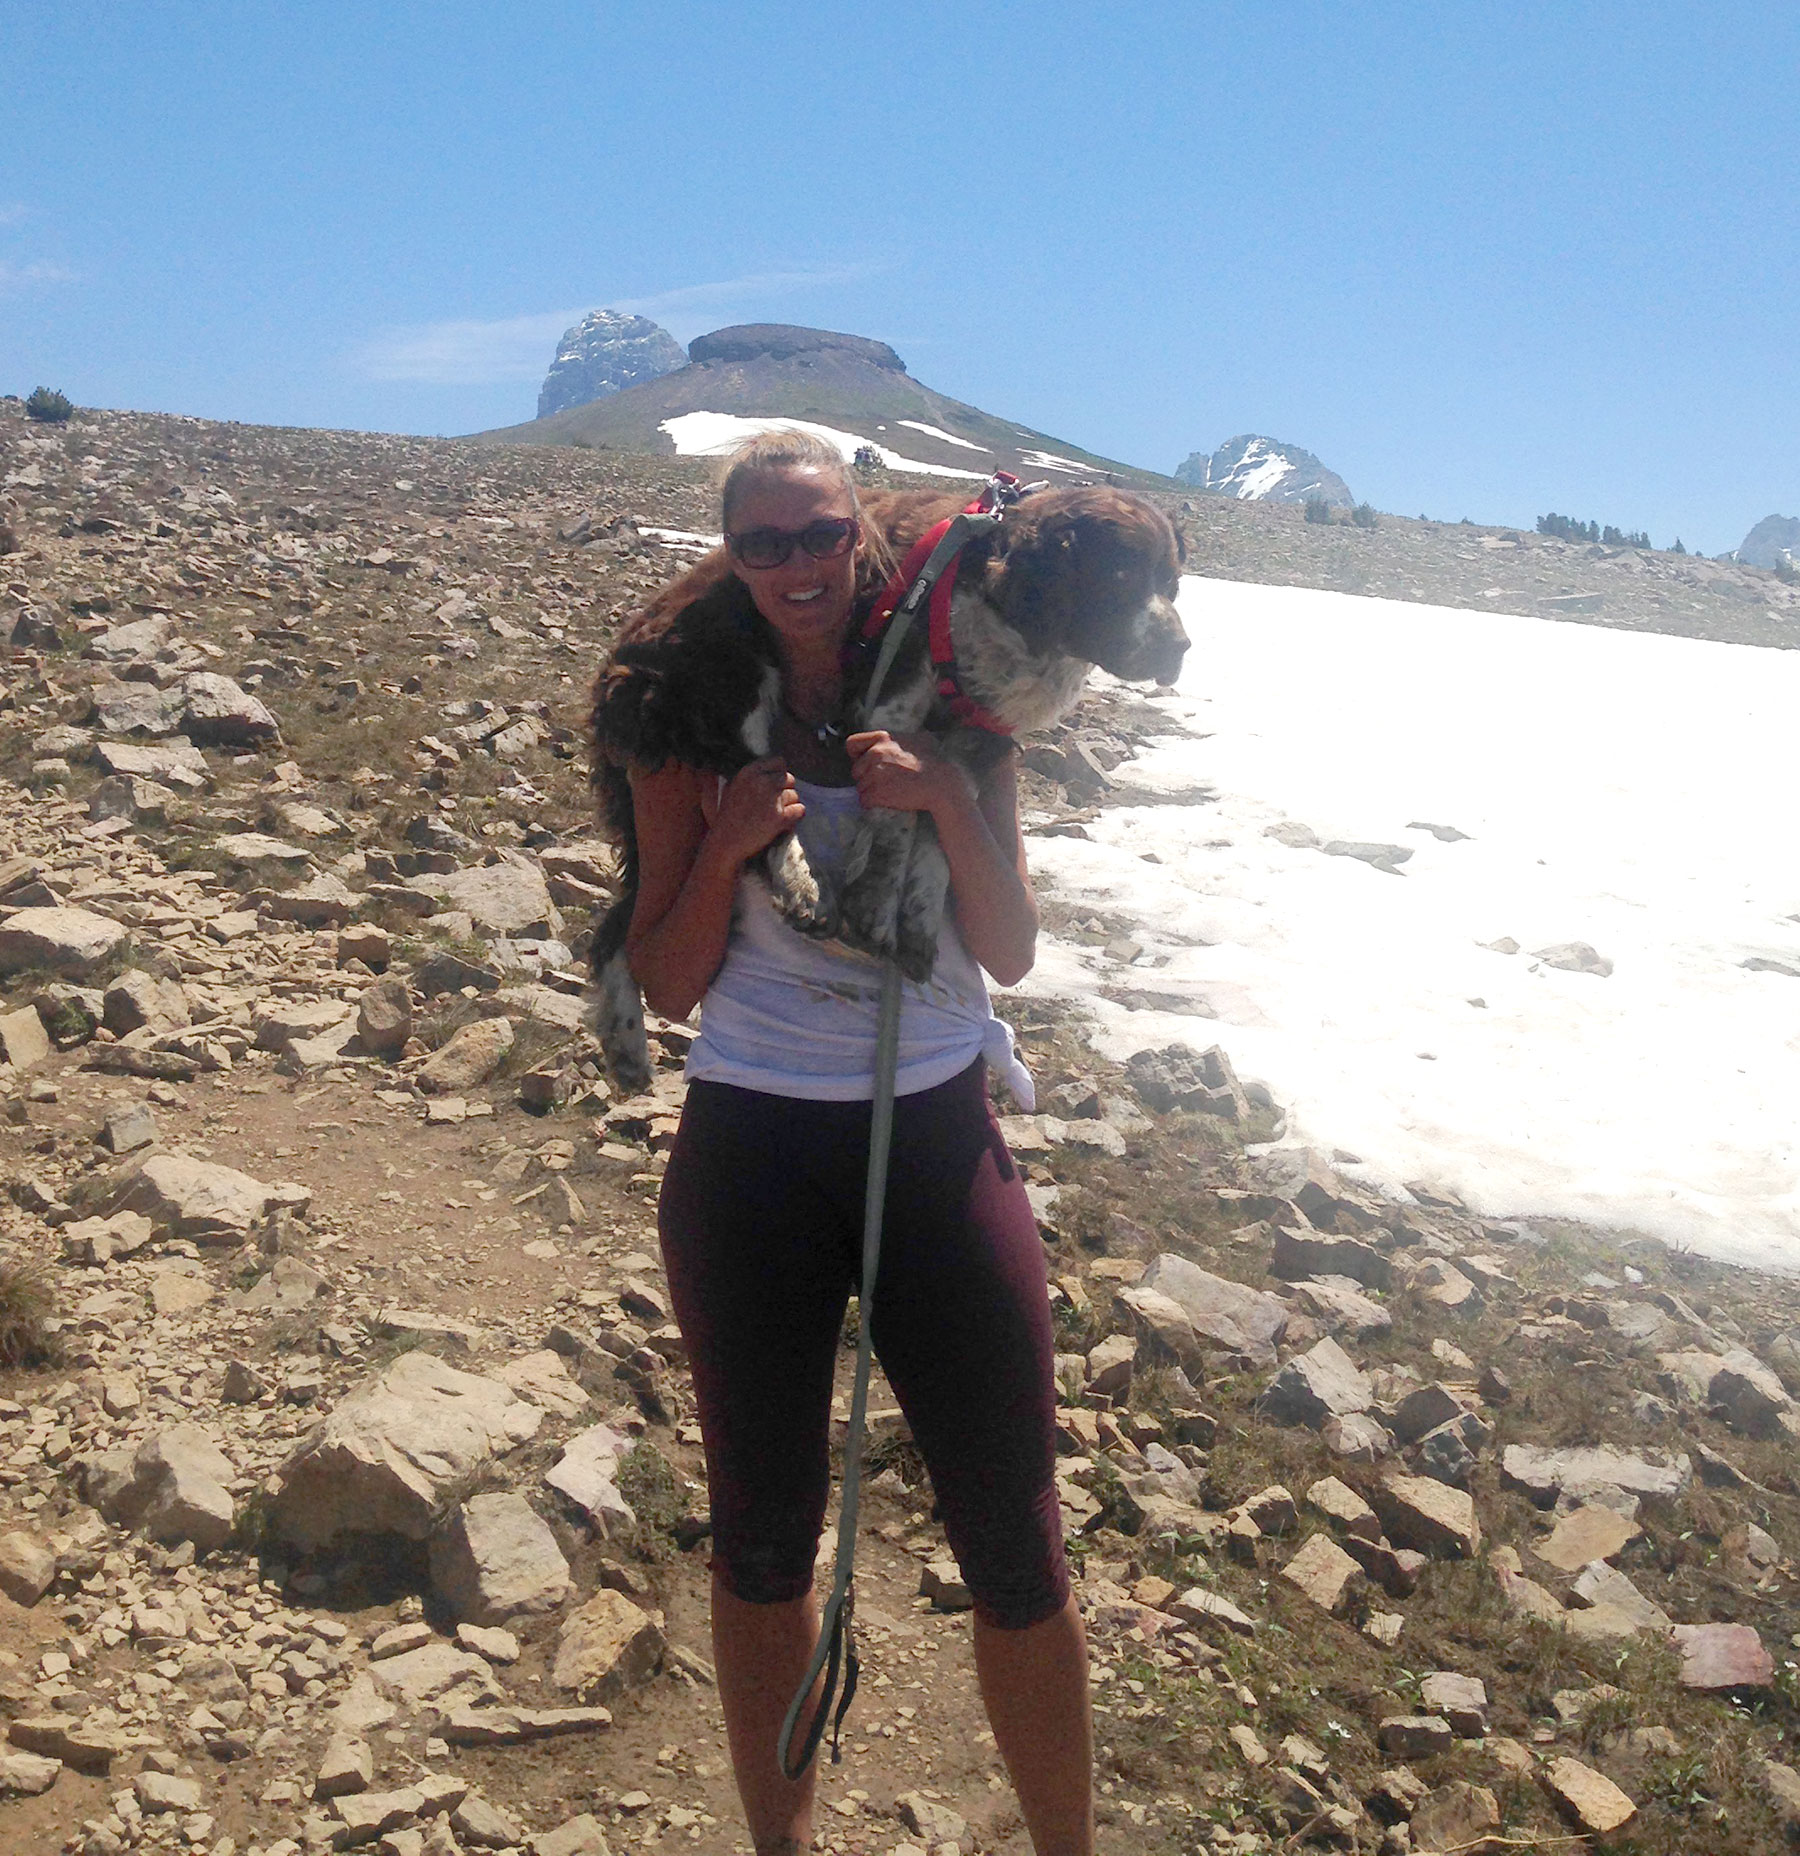 Hiker Fights Snow, Rain and Rough Terrain to Carry Injured Lost Dog Down Mountain to Safety